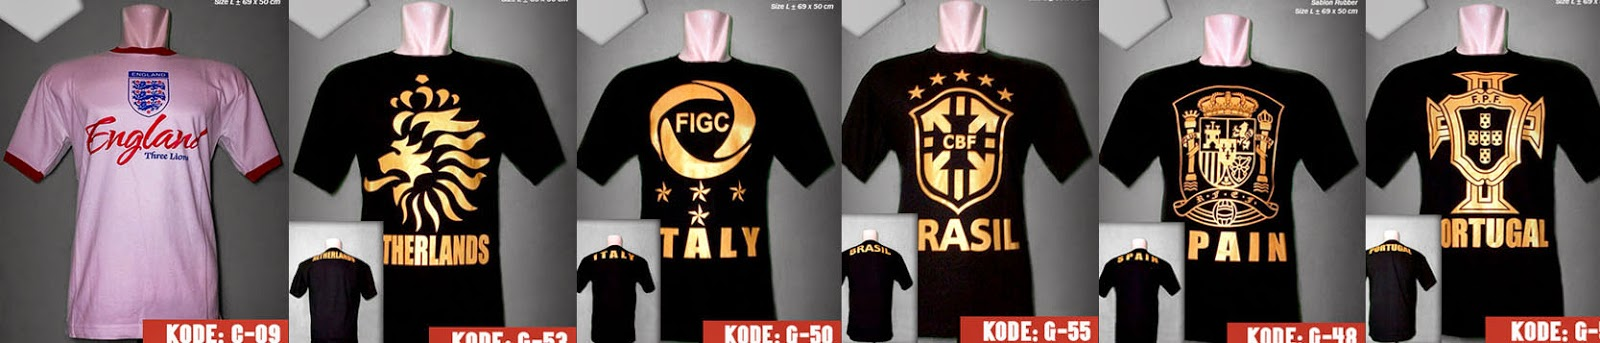 kaos piala dunia germany,kaos german,kaos jesry germany